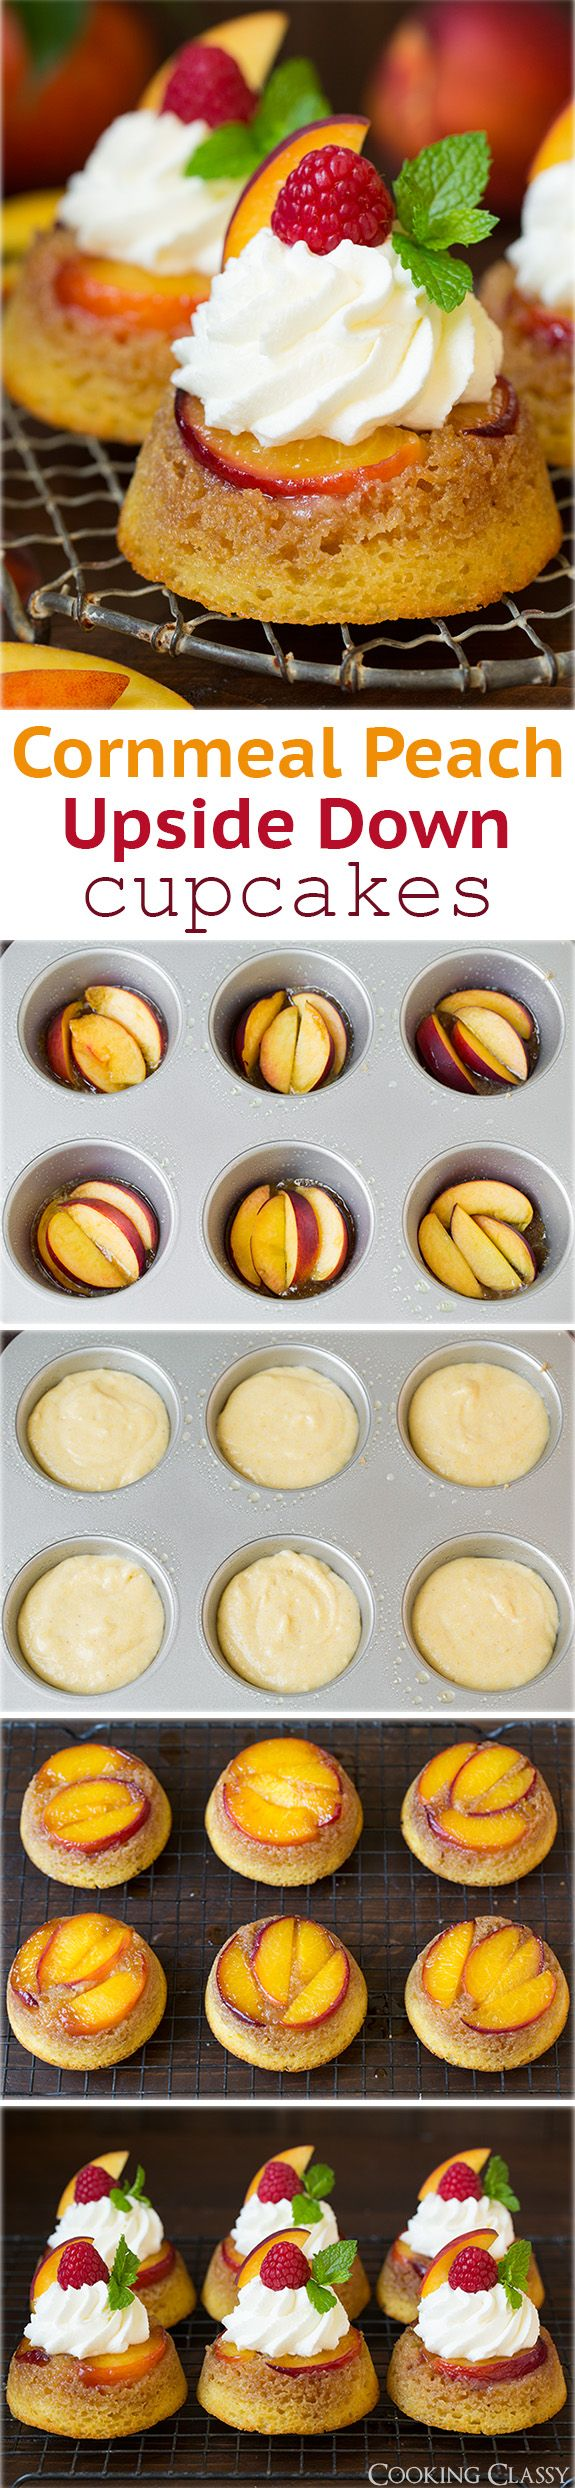 Cornmeal Peach Upside Down Cupcakes - these are DREAMY! Like peach cobbler meets cornbread meets upside down cake meets cupcakes! So fun, everyone loved them!